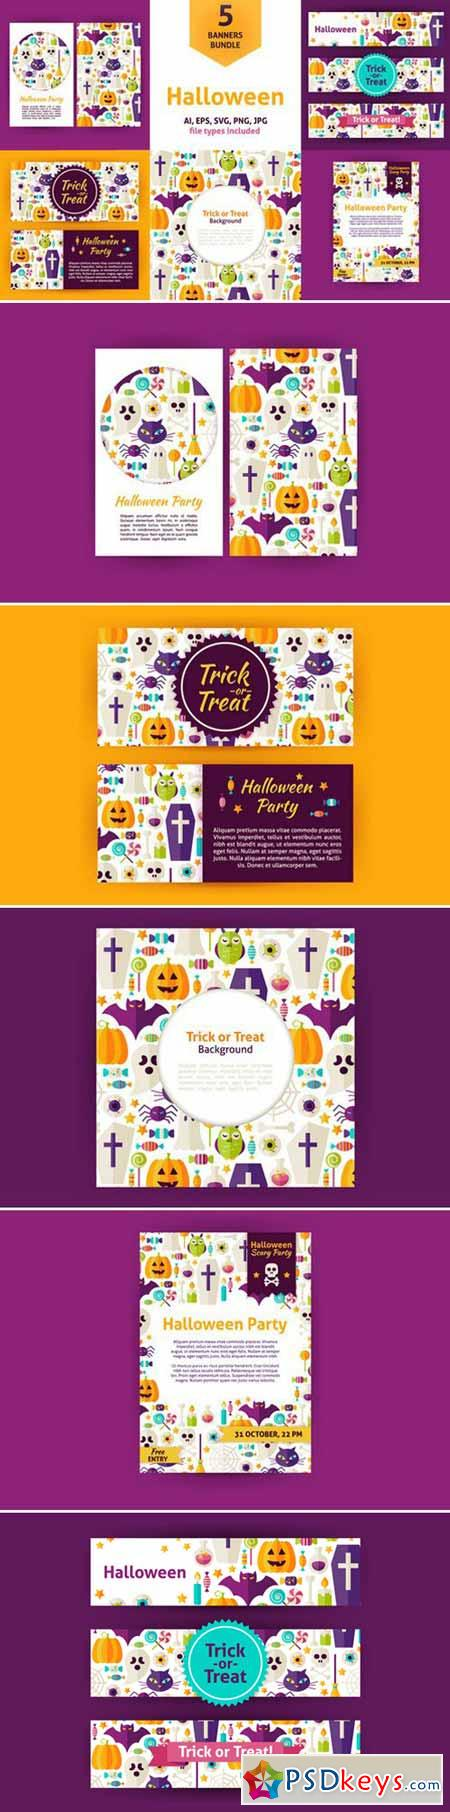 Halloween Party Vector Flat Banners 390279